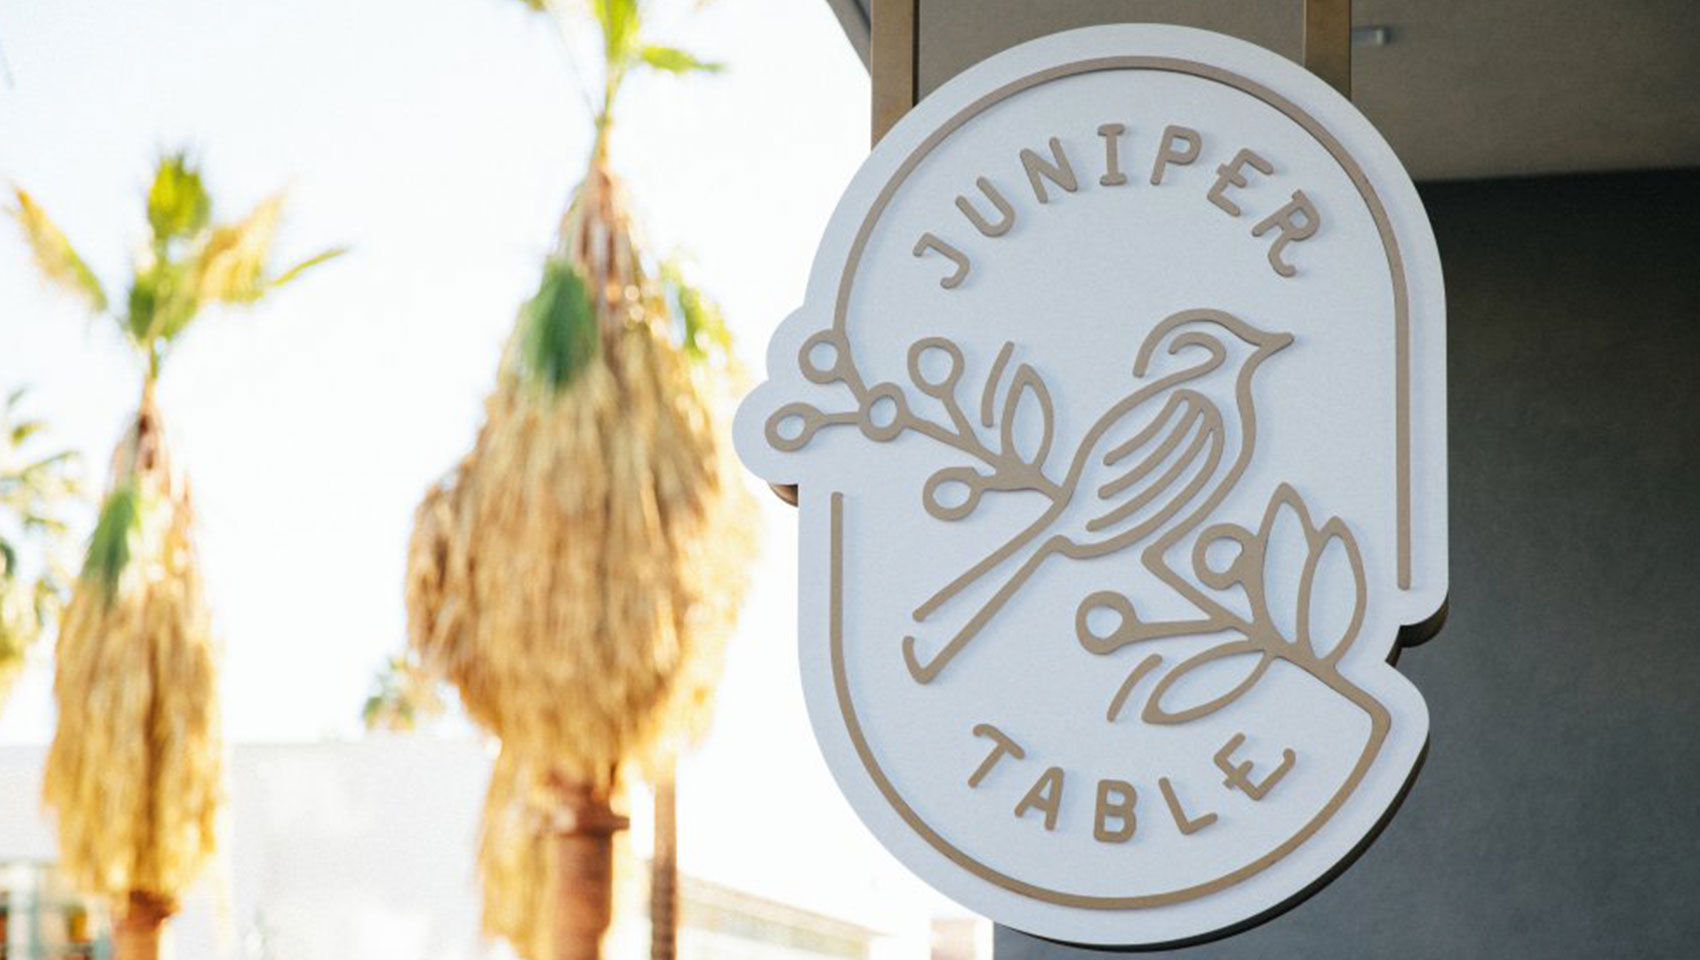 Juniper Table sign